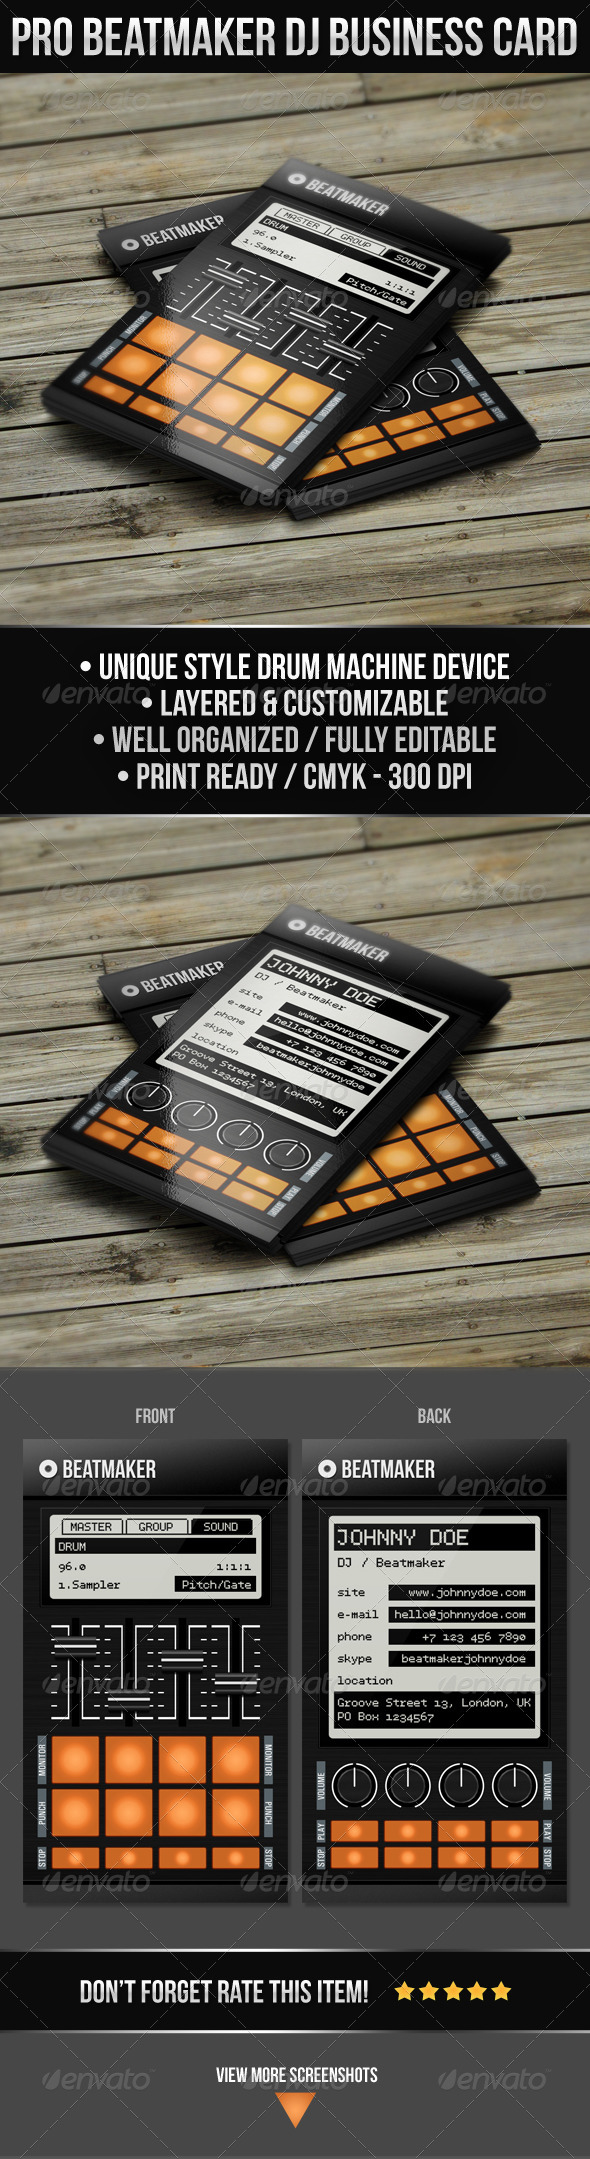 Pro Beatmaker DJ Business Card - Industry Specific Business Cards